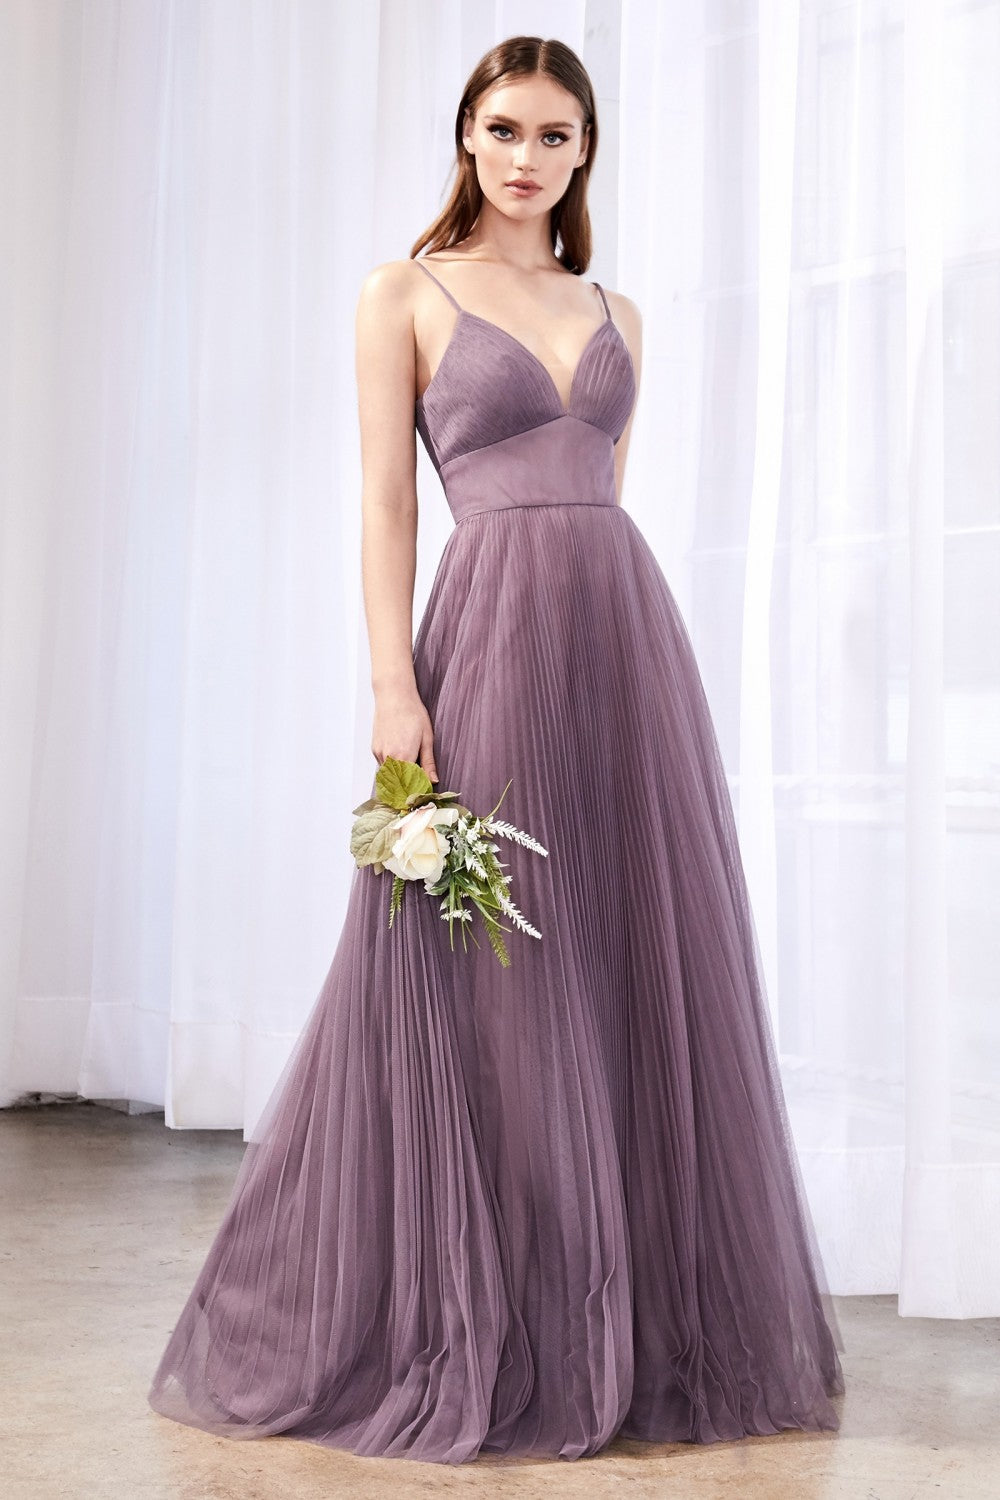 Dahlia Bridesmaid Dress Full Tulle Skirt in French Lilac C184KR-FrenchLilac  SAMPLE IN STORE